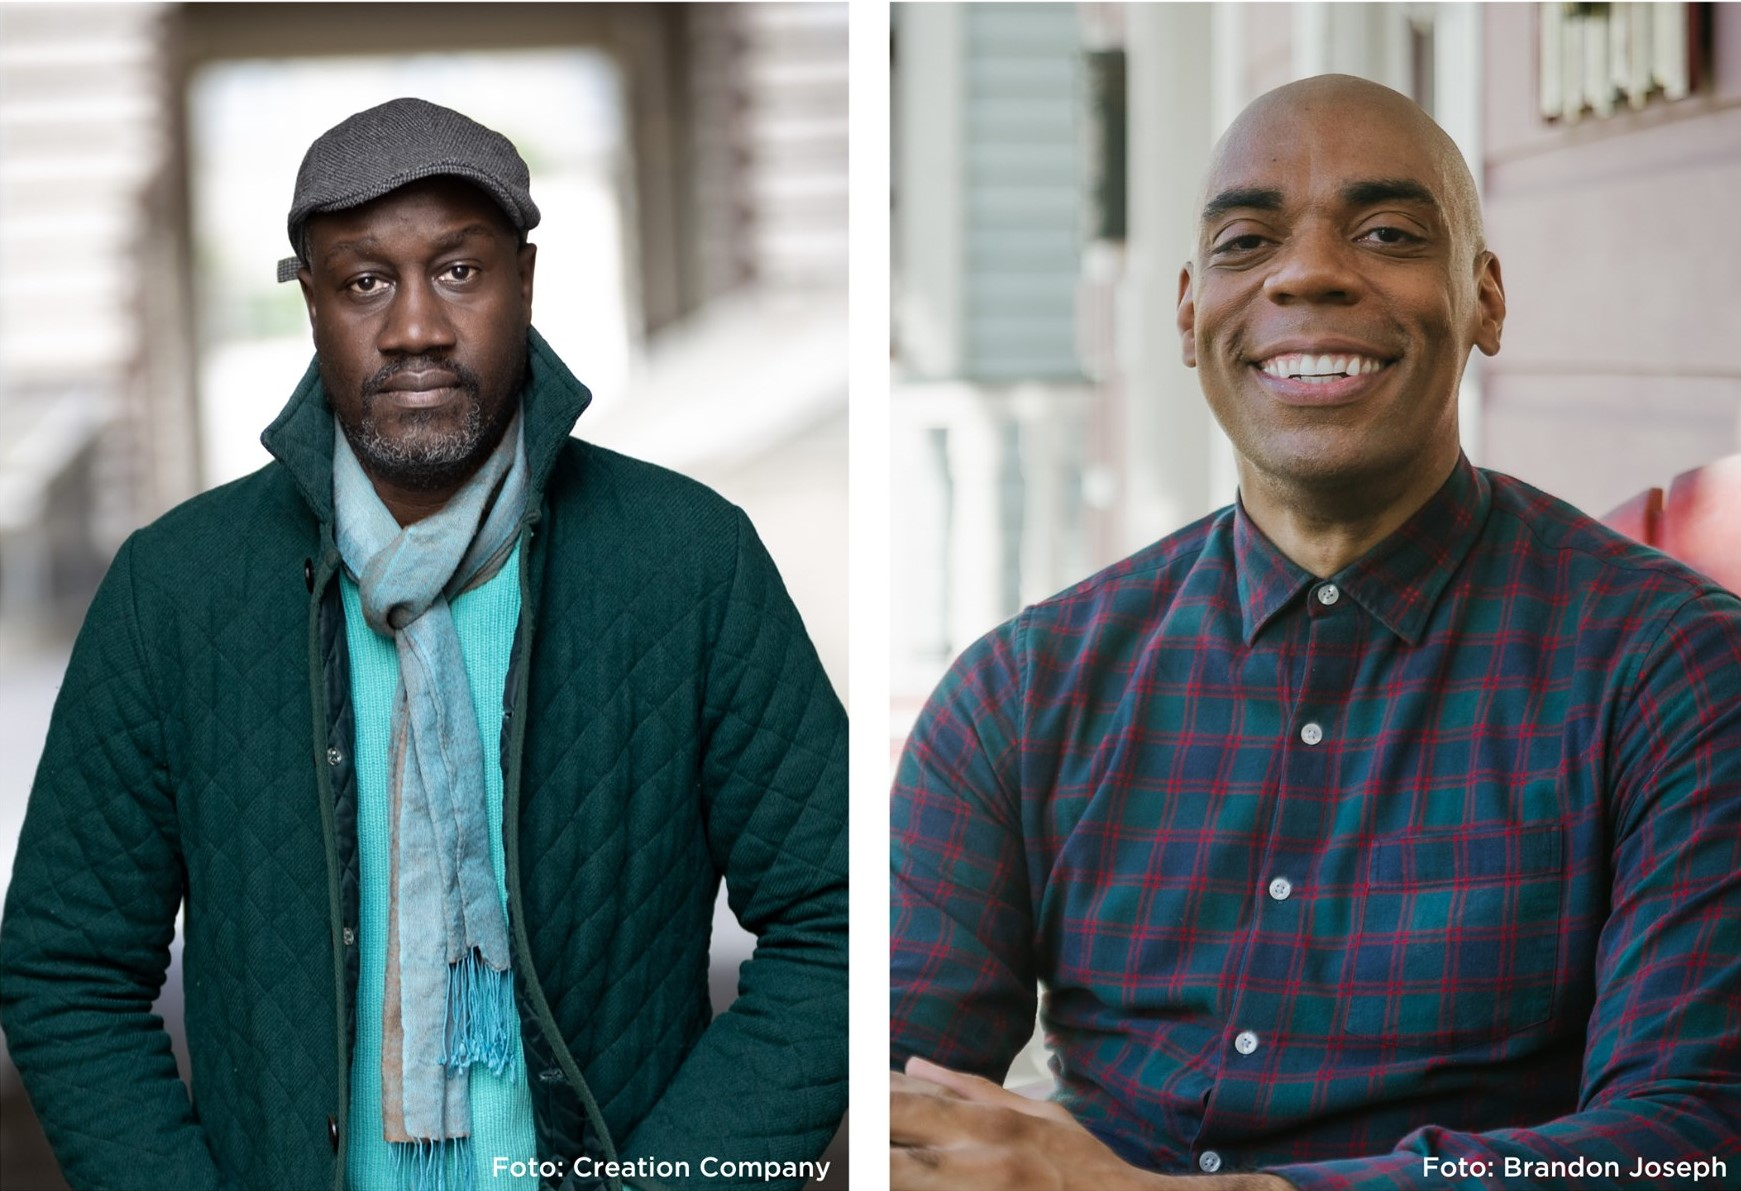 A picture of Musa Okwonga and Channing Joseph